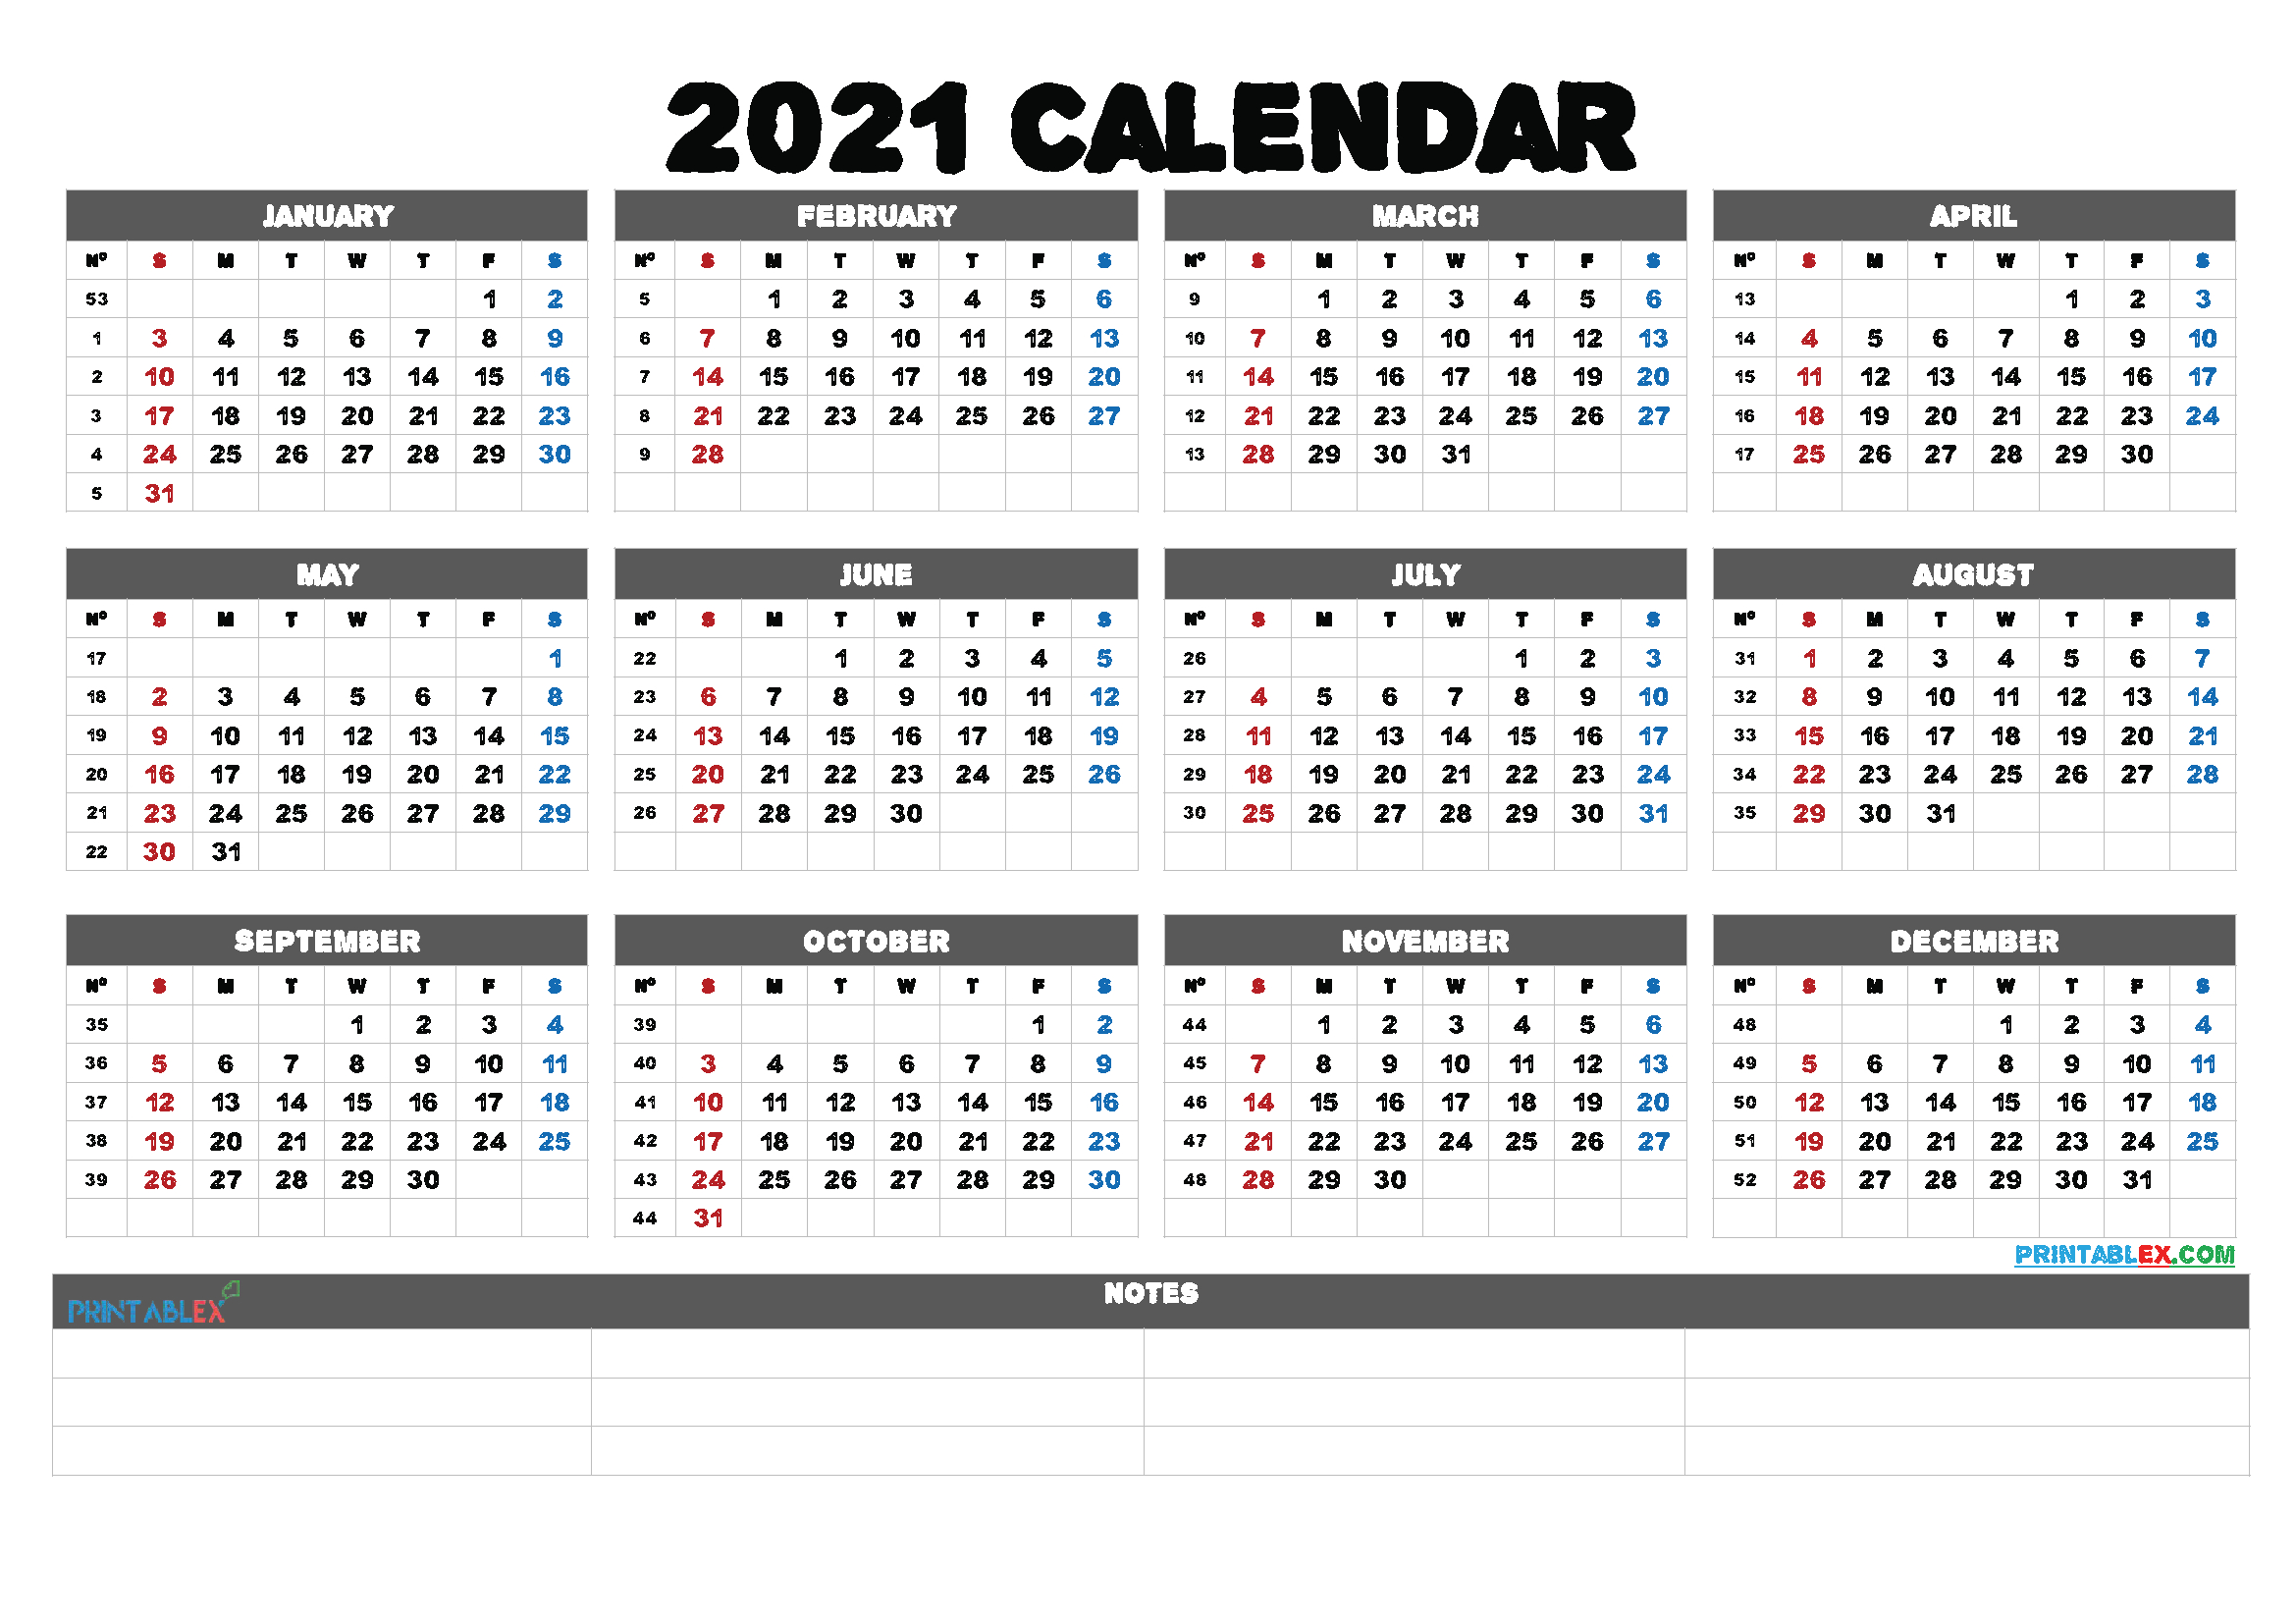 Printable 5 By 8 2021 Calendar - 8 5 X 11 Inch Bold 2021 Calendar By Running With Foxes